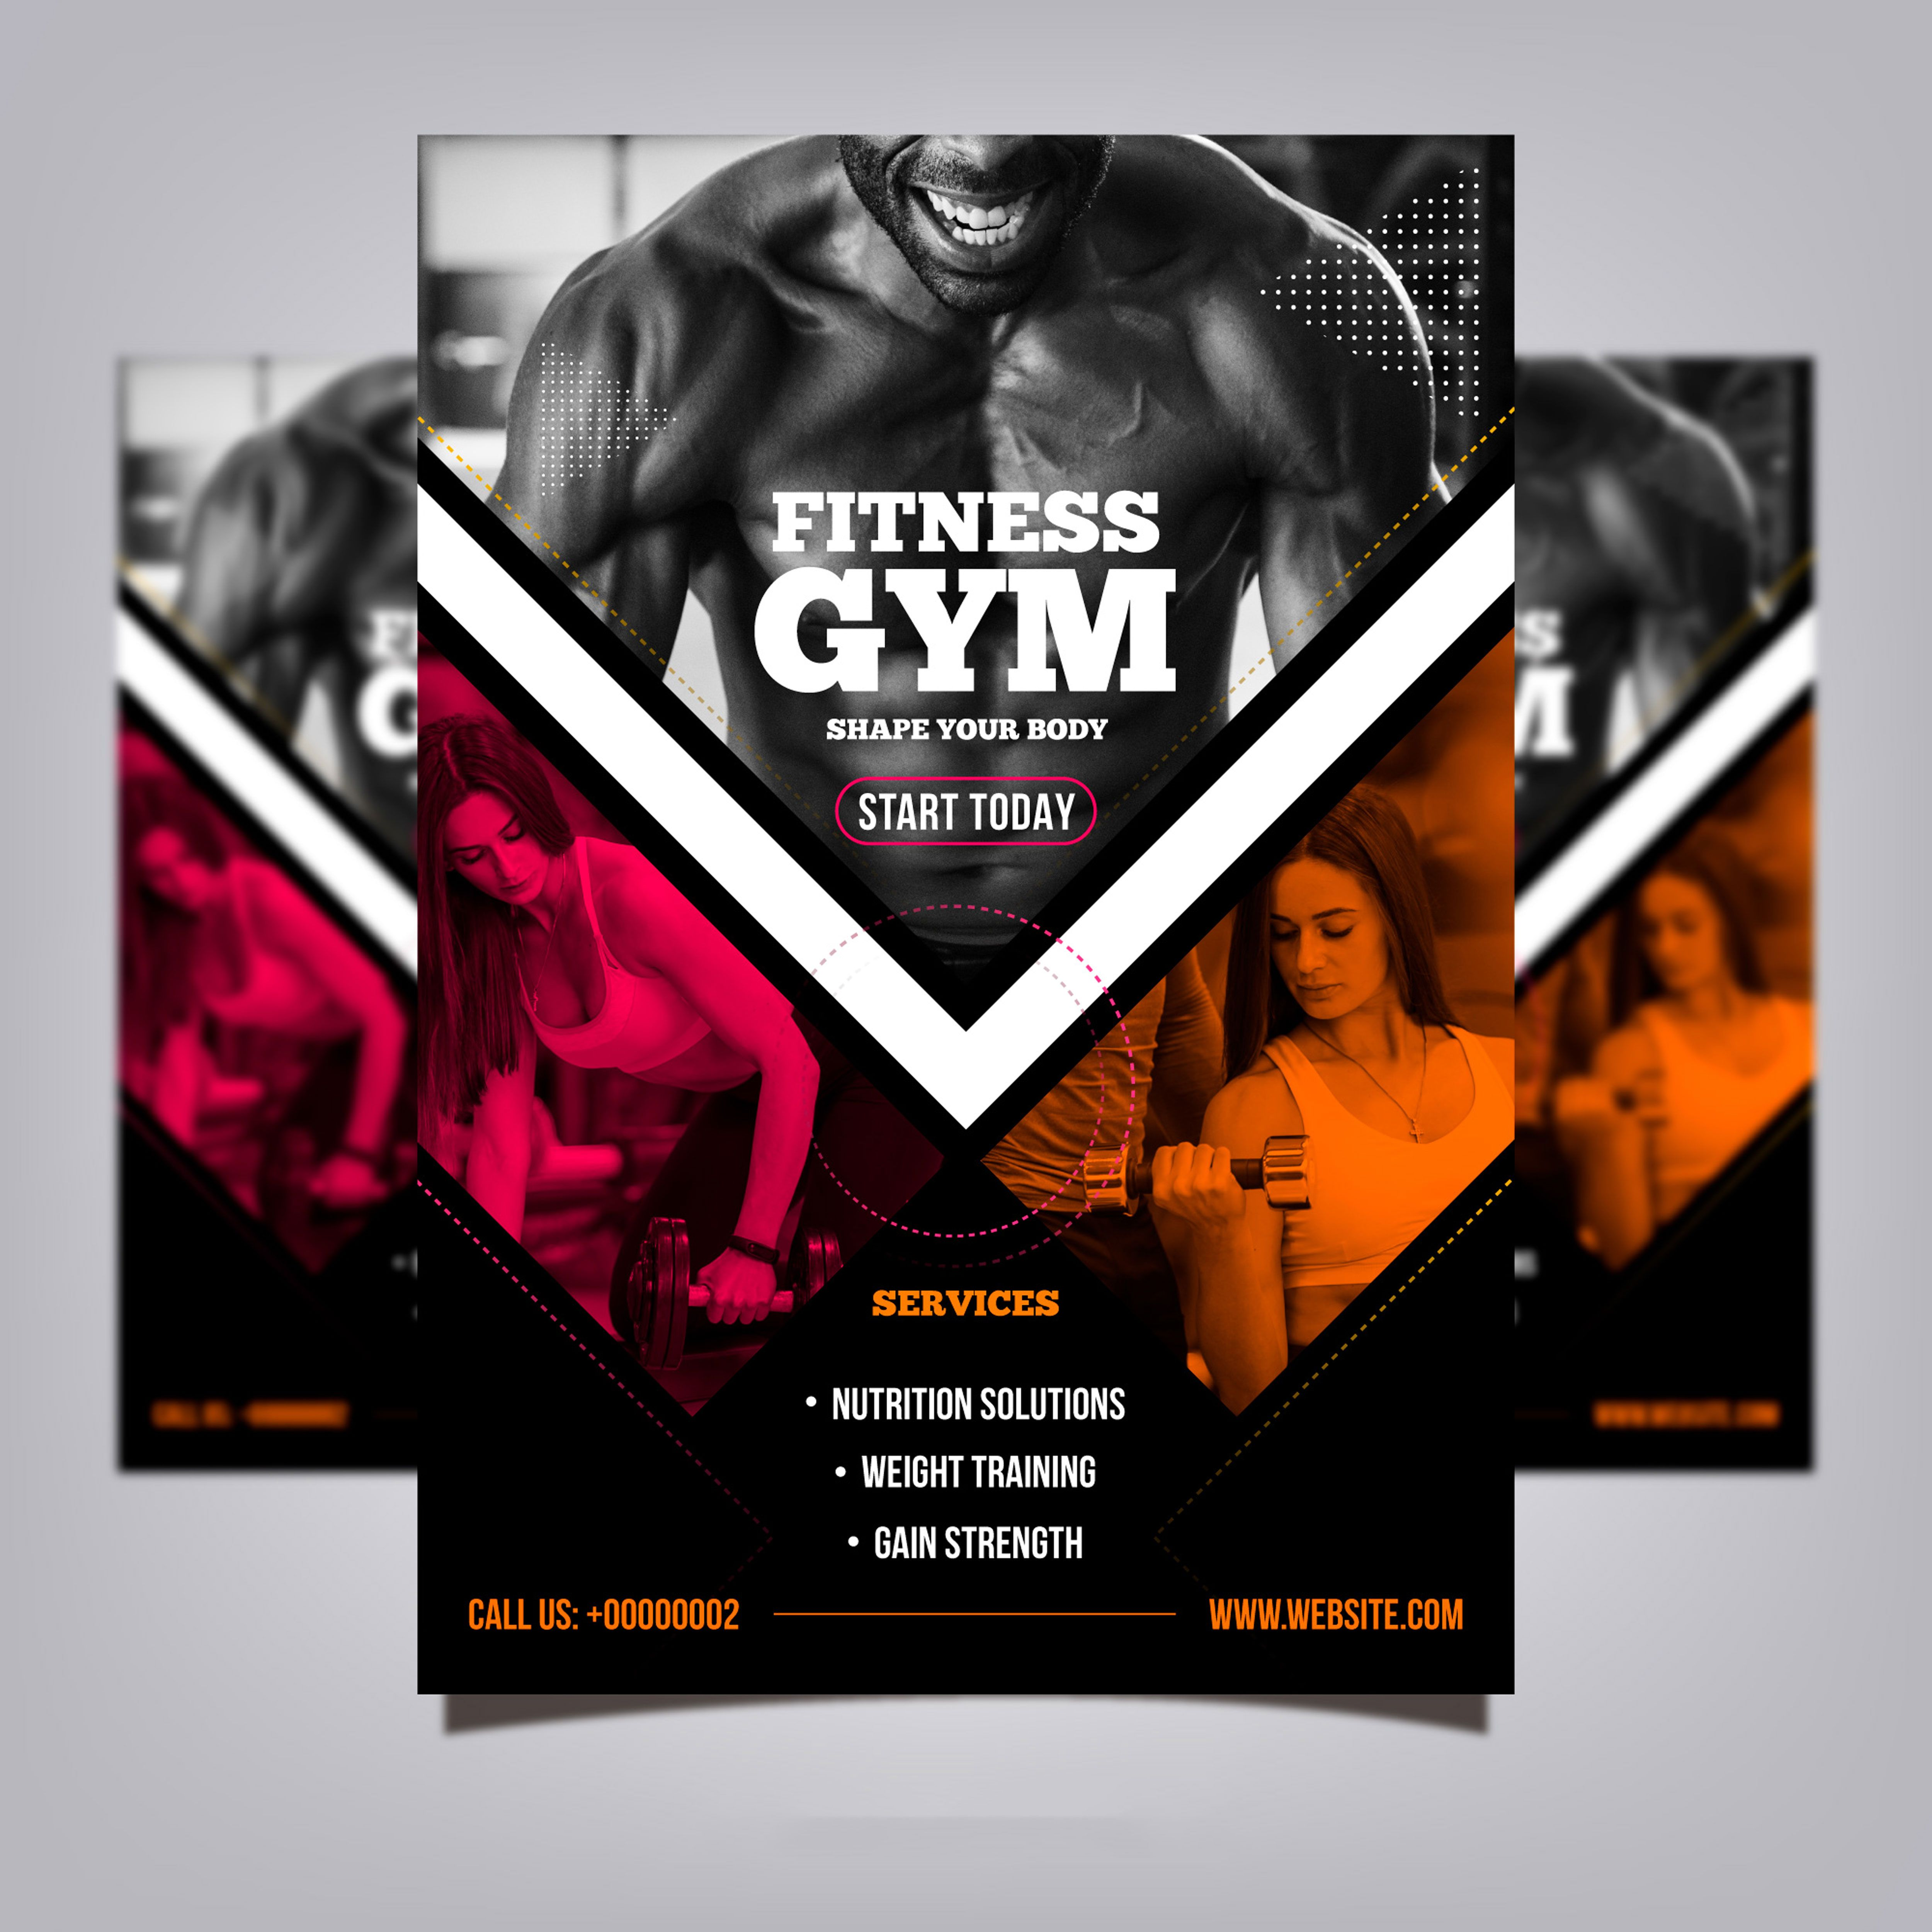 Gym Club Flyer Template With Photo Gym Poster Fitness Flyer Gym Club